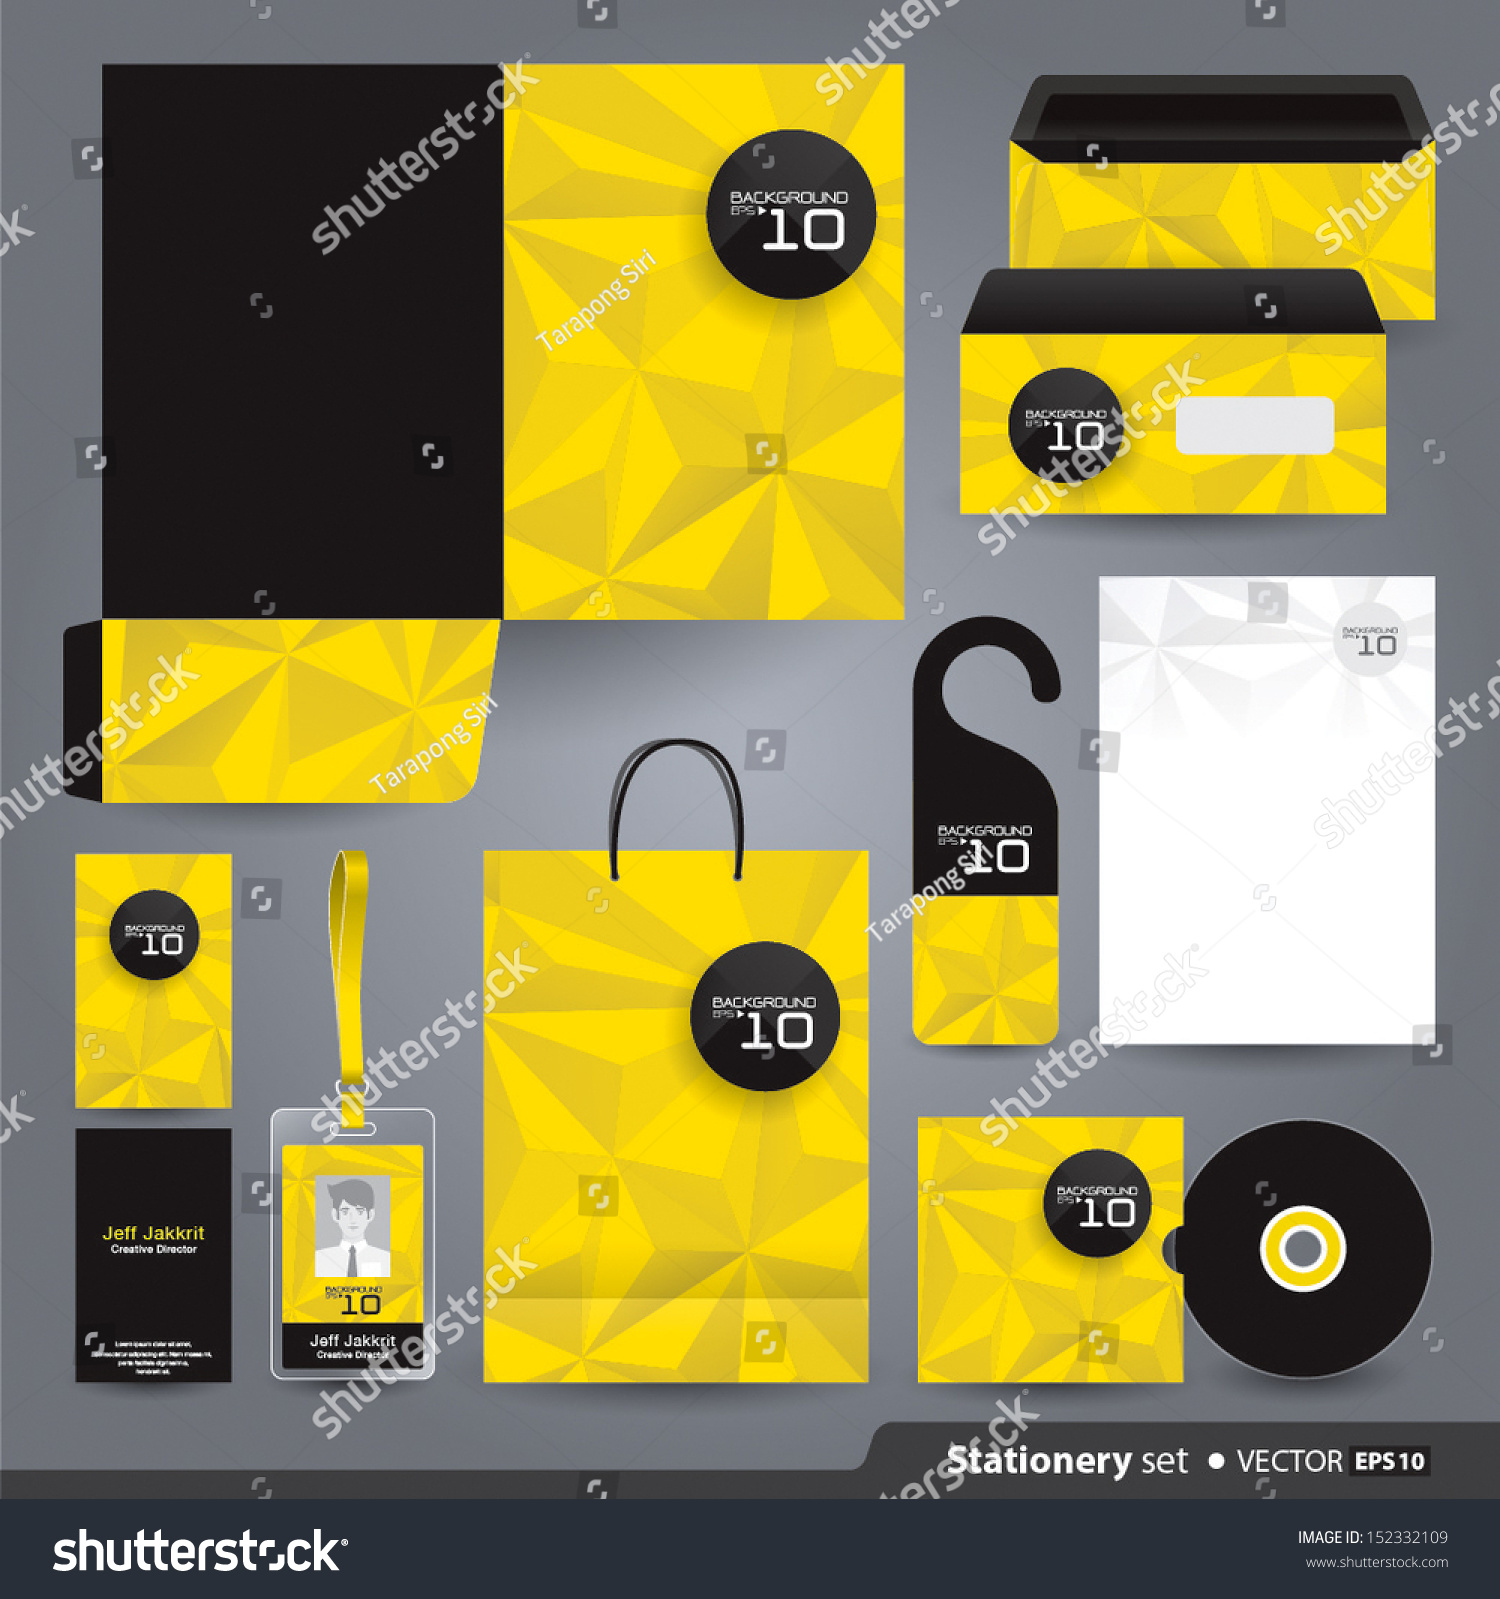 Corporate Graphic Design Stationery Set Design Stationery Template Corporate Stock Vector